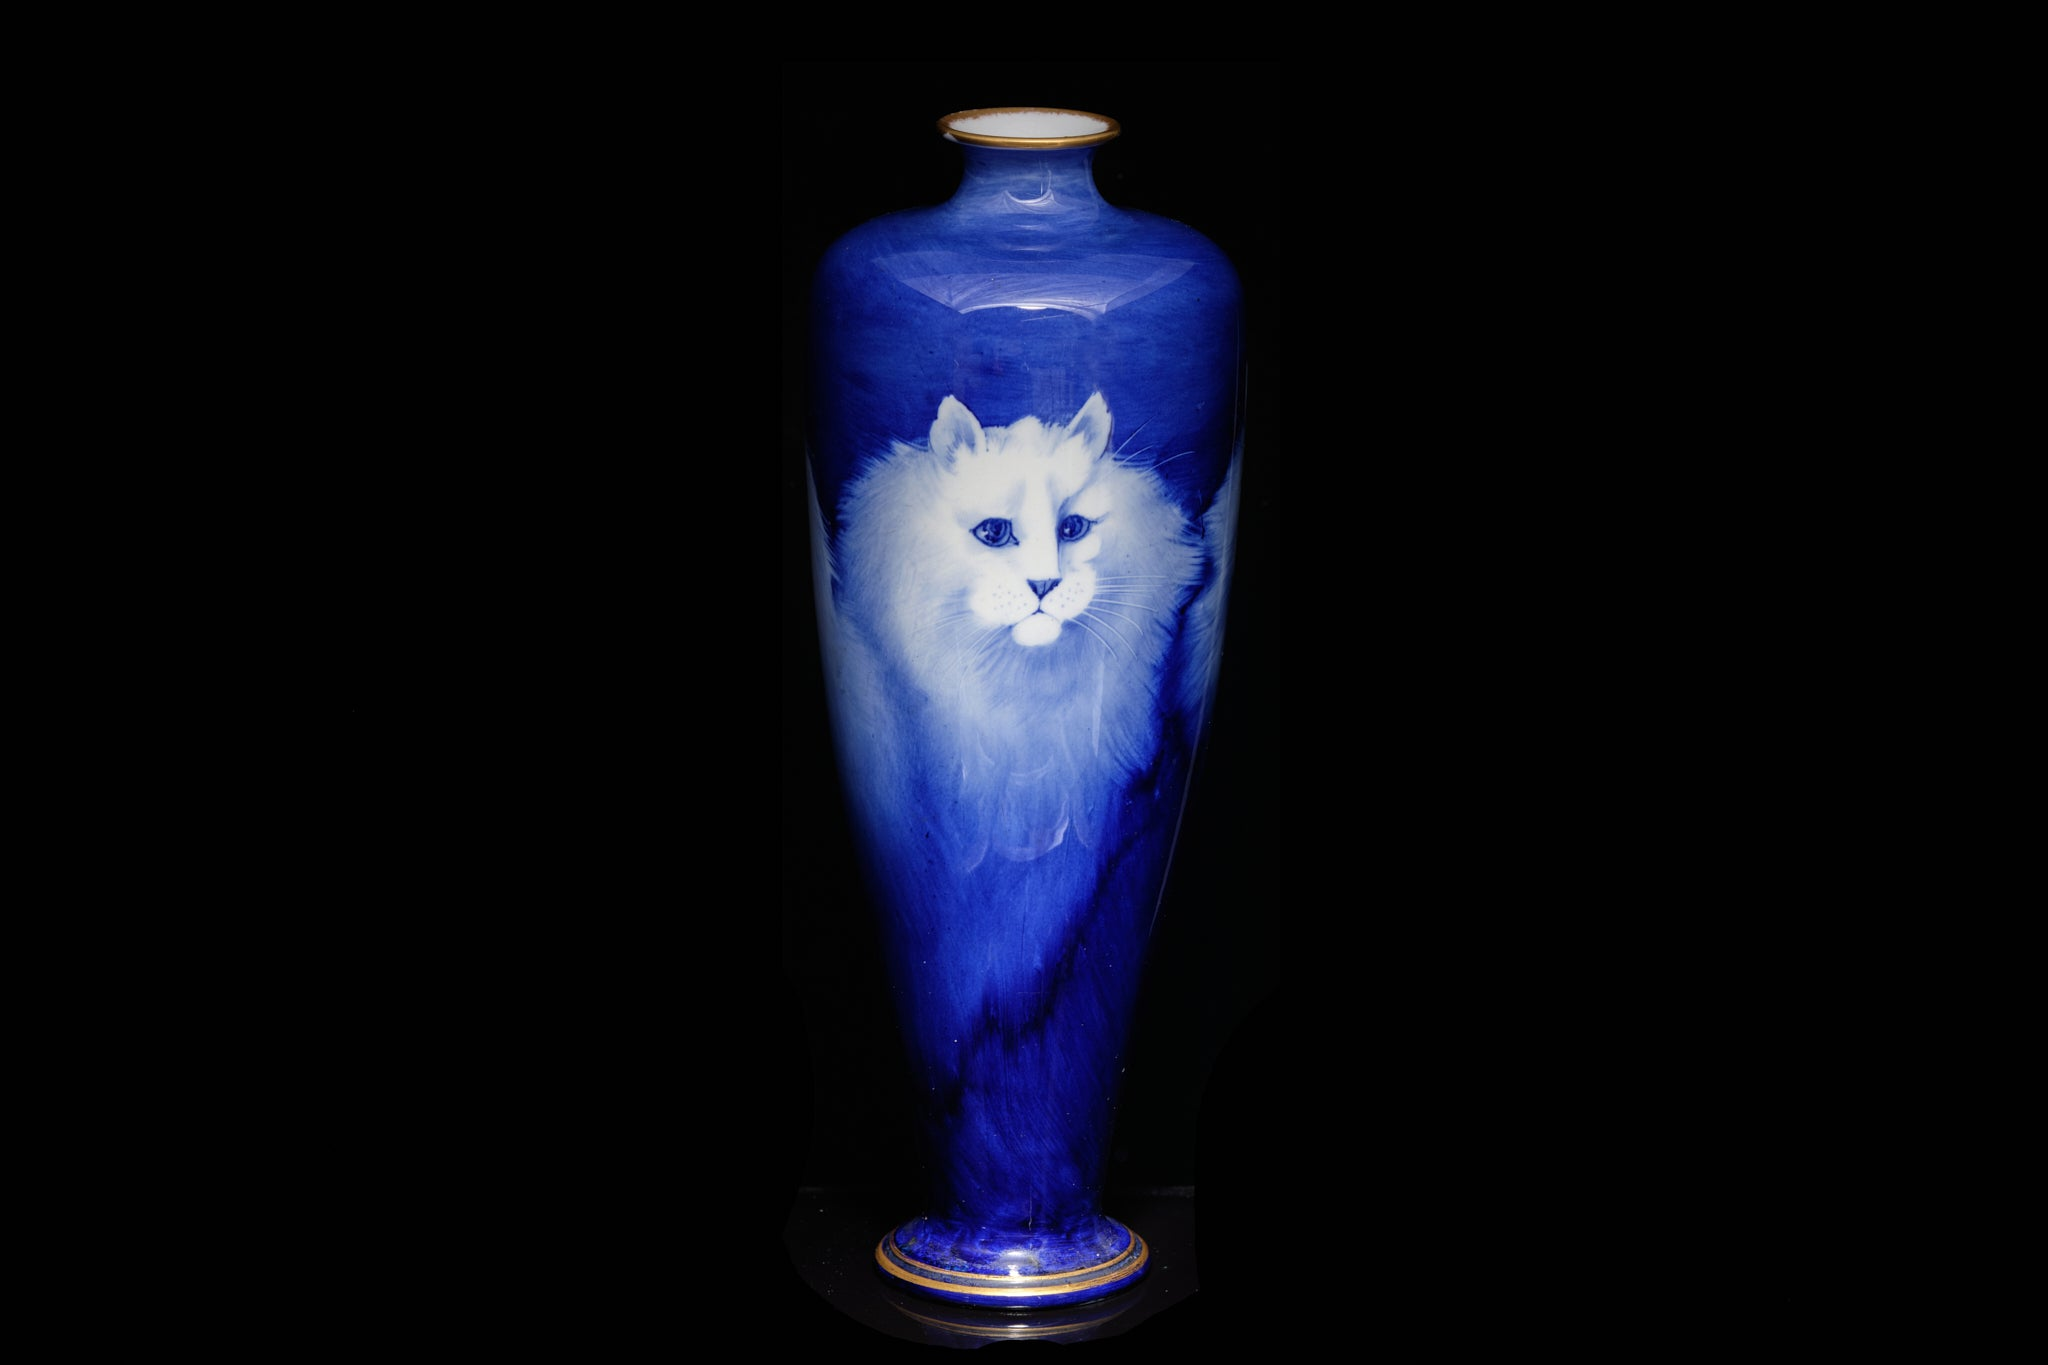 Royal Winton Handpainted Vase.